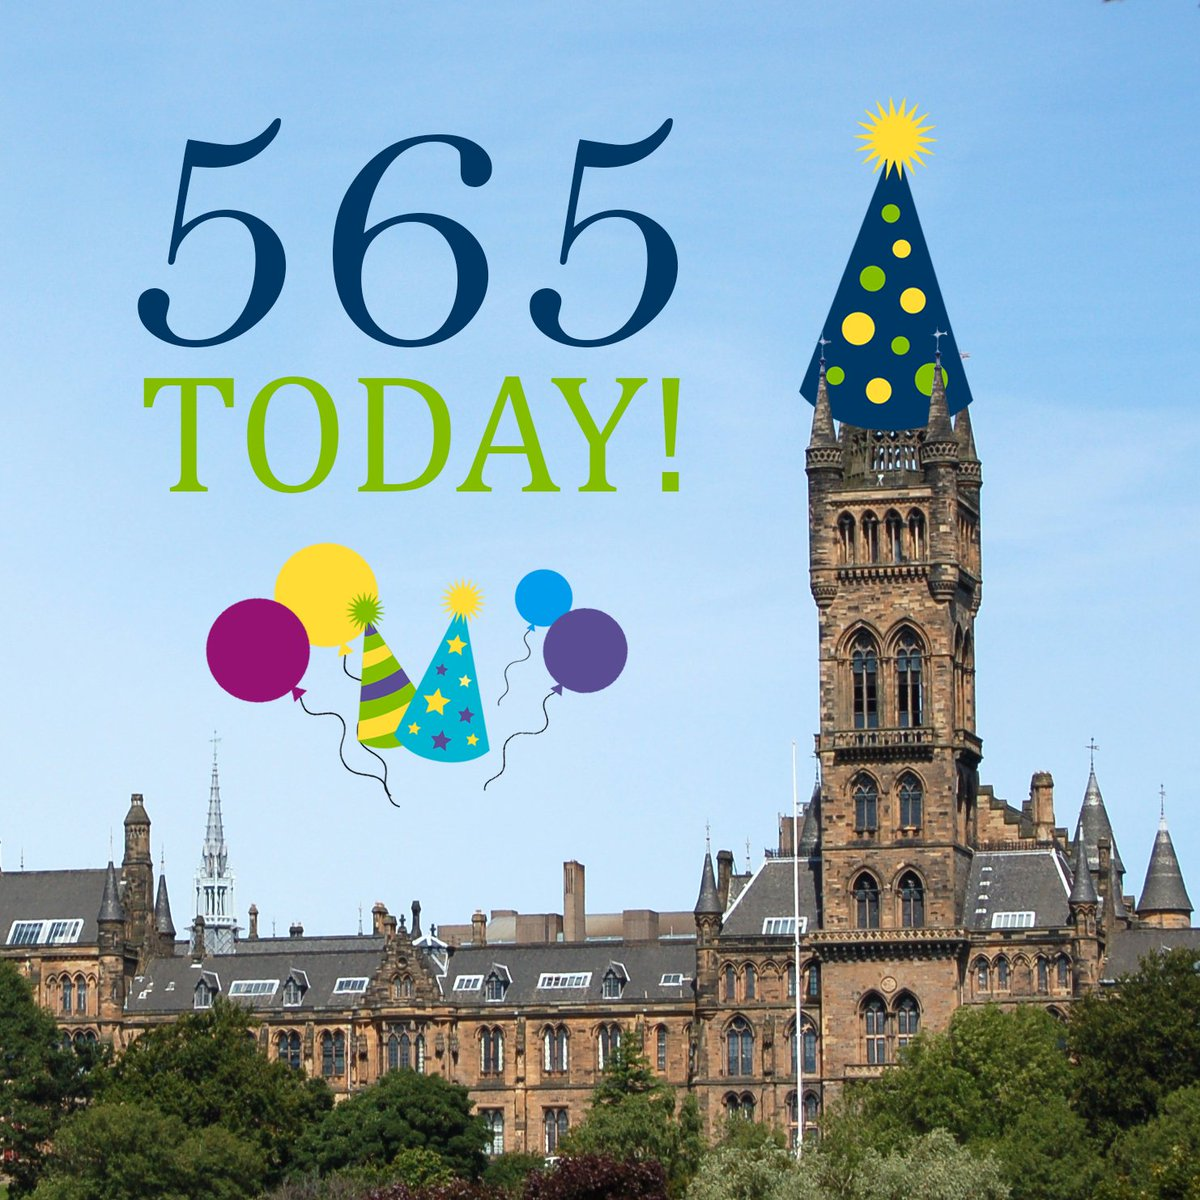 Happy Birthday to Us! We're 565 years young today, still looking fabulous don't you think? #UofG565 https://t.co/AsWwx0Euwg